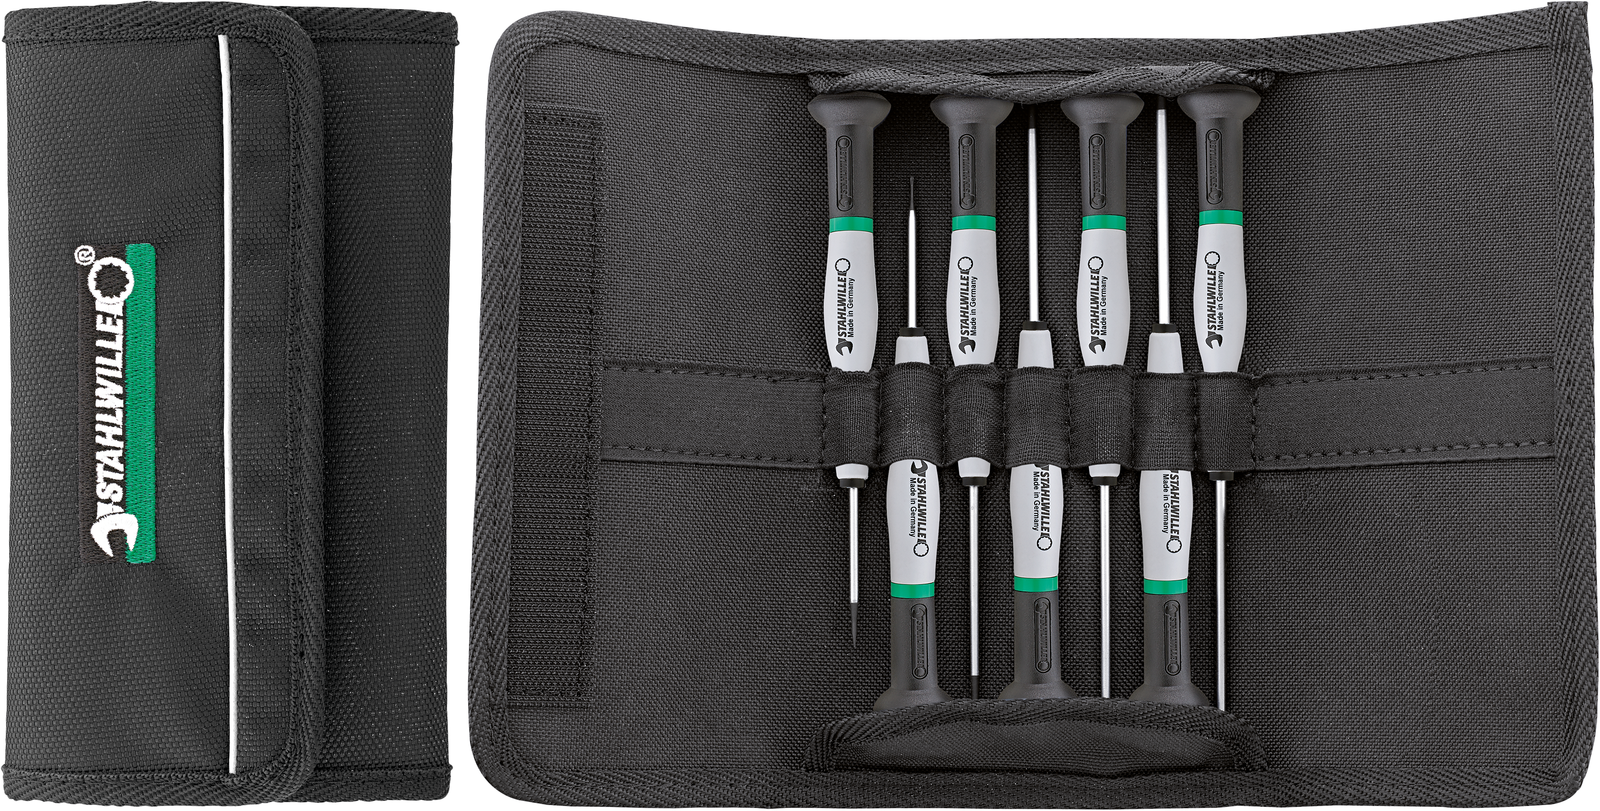 Electronic screwdriver sets